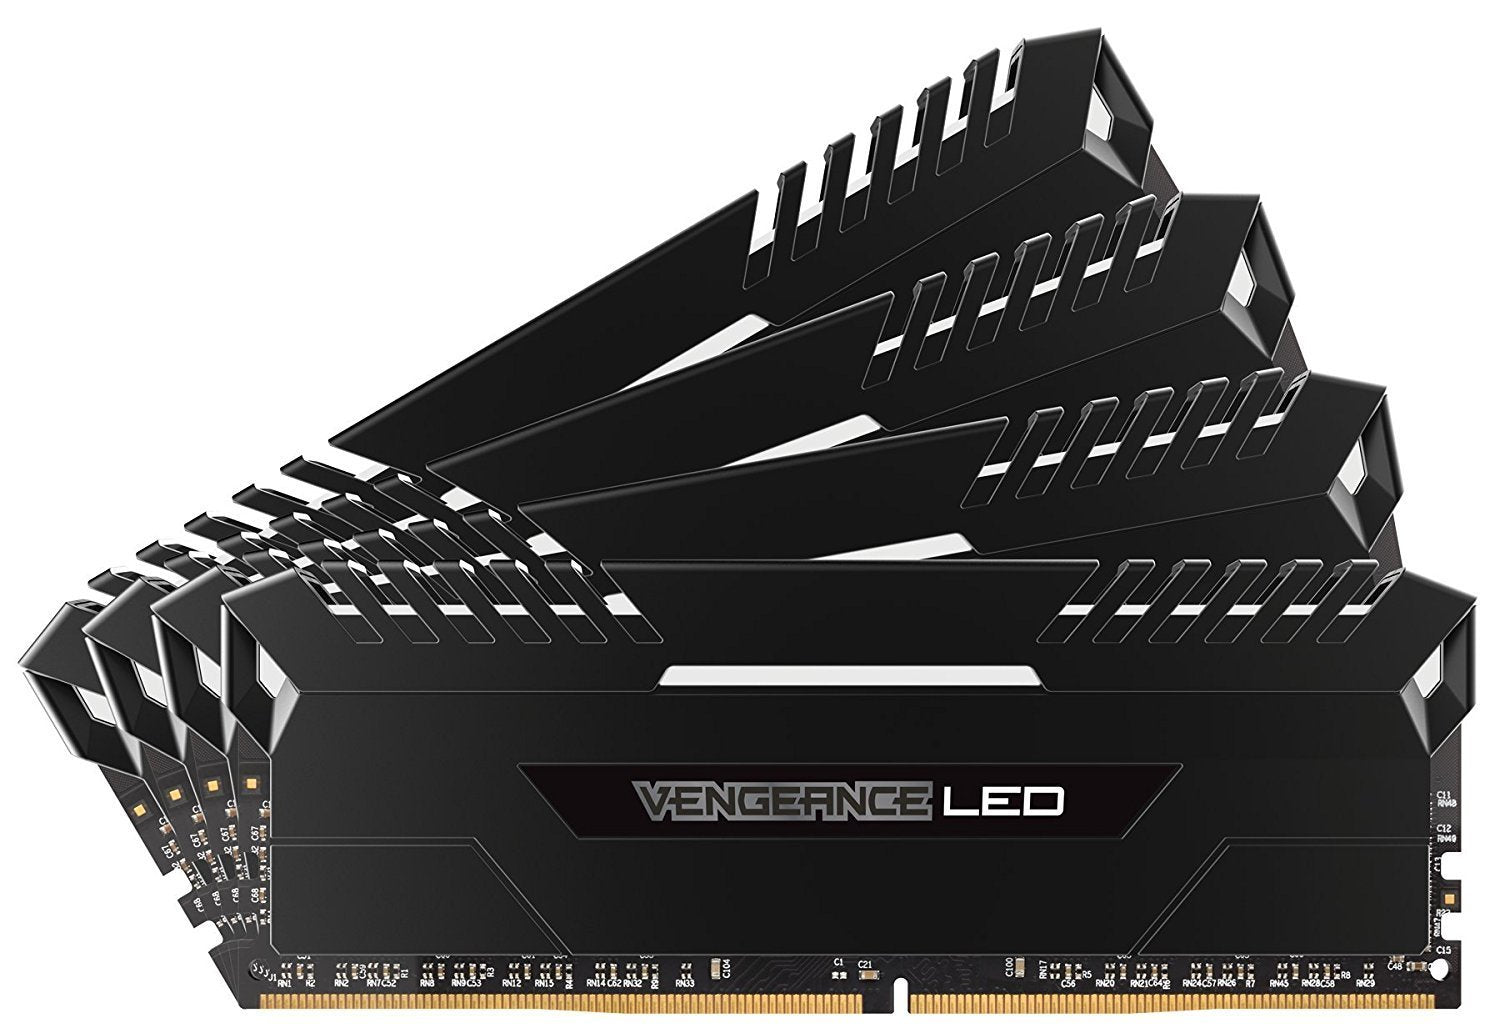 Corsair Vengeance LED 32GB (4x8GB) DDR4 3200 (PC4-25600) C16 for DDR4 Systems - White LED PC Memory (CMU32GX4M4C3200C16)